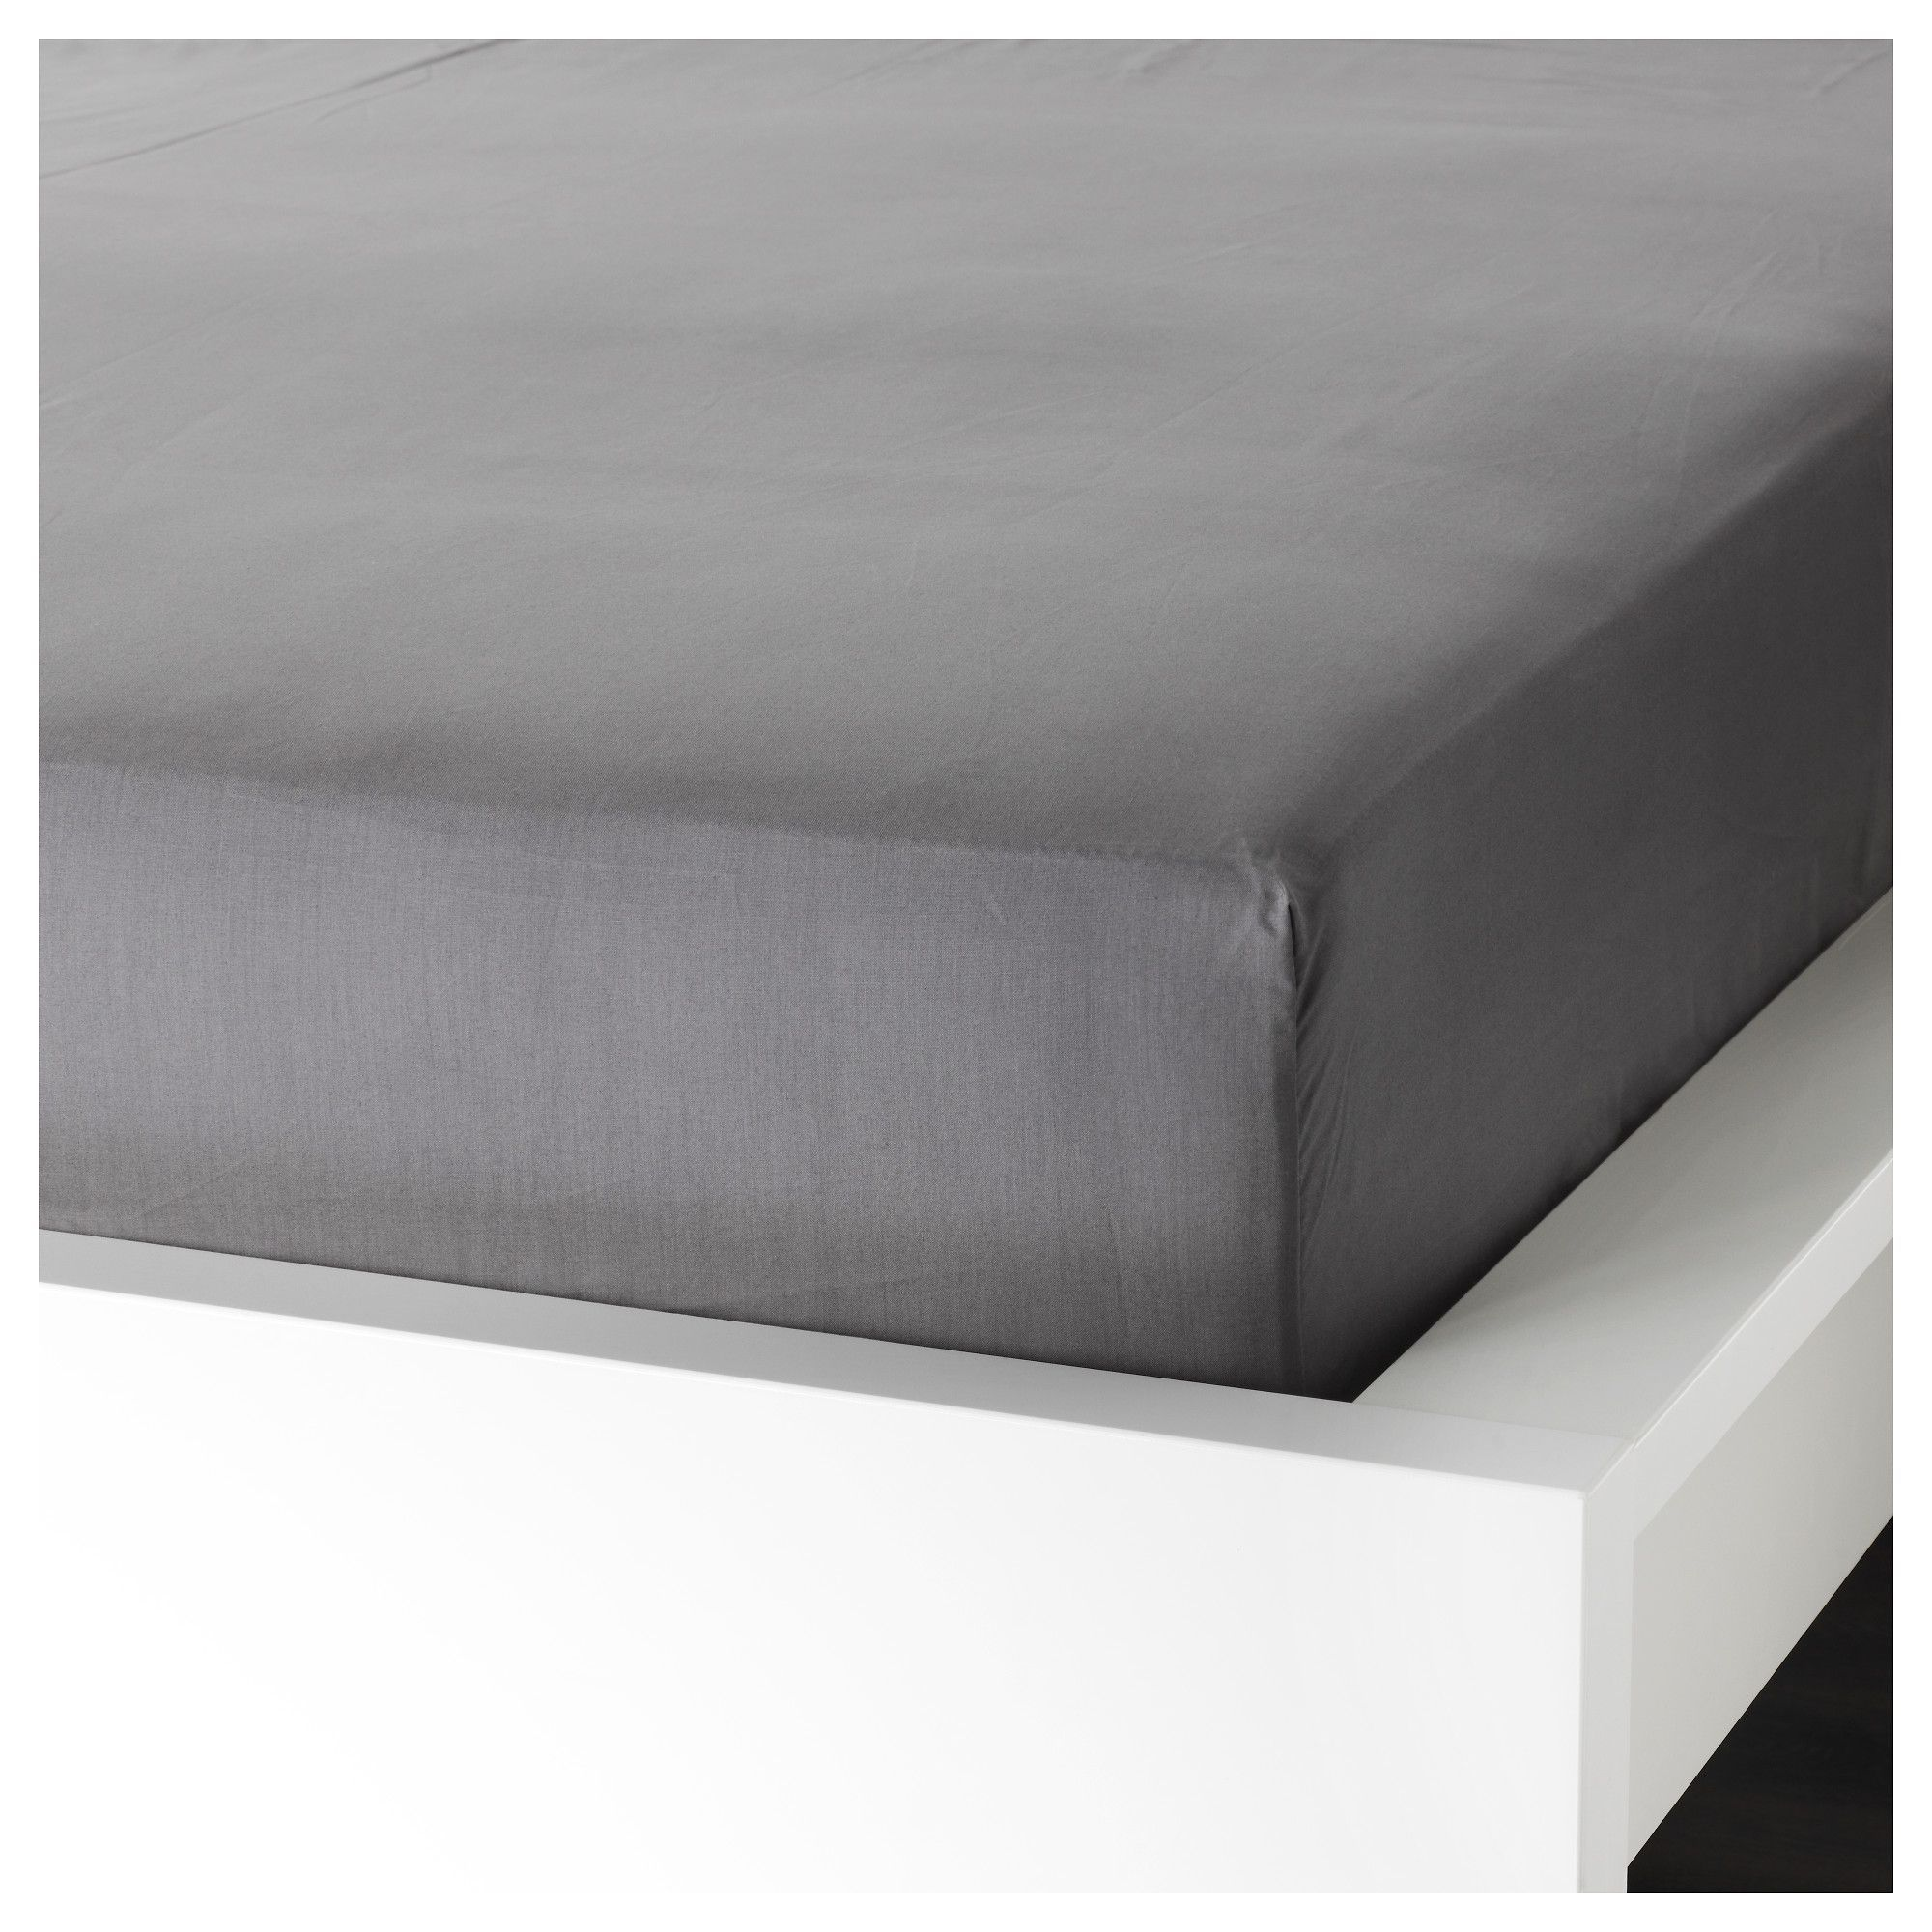 ullvide fitted sheet queen ikea doublebedsheets double bed